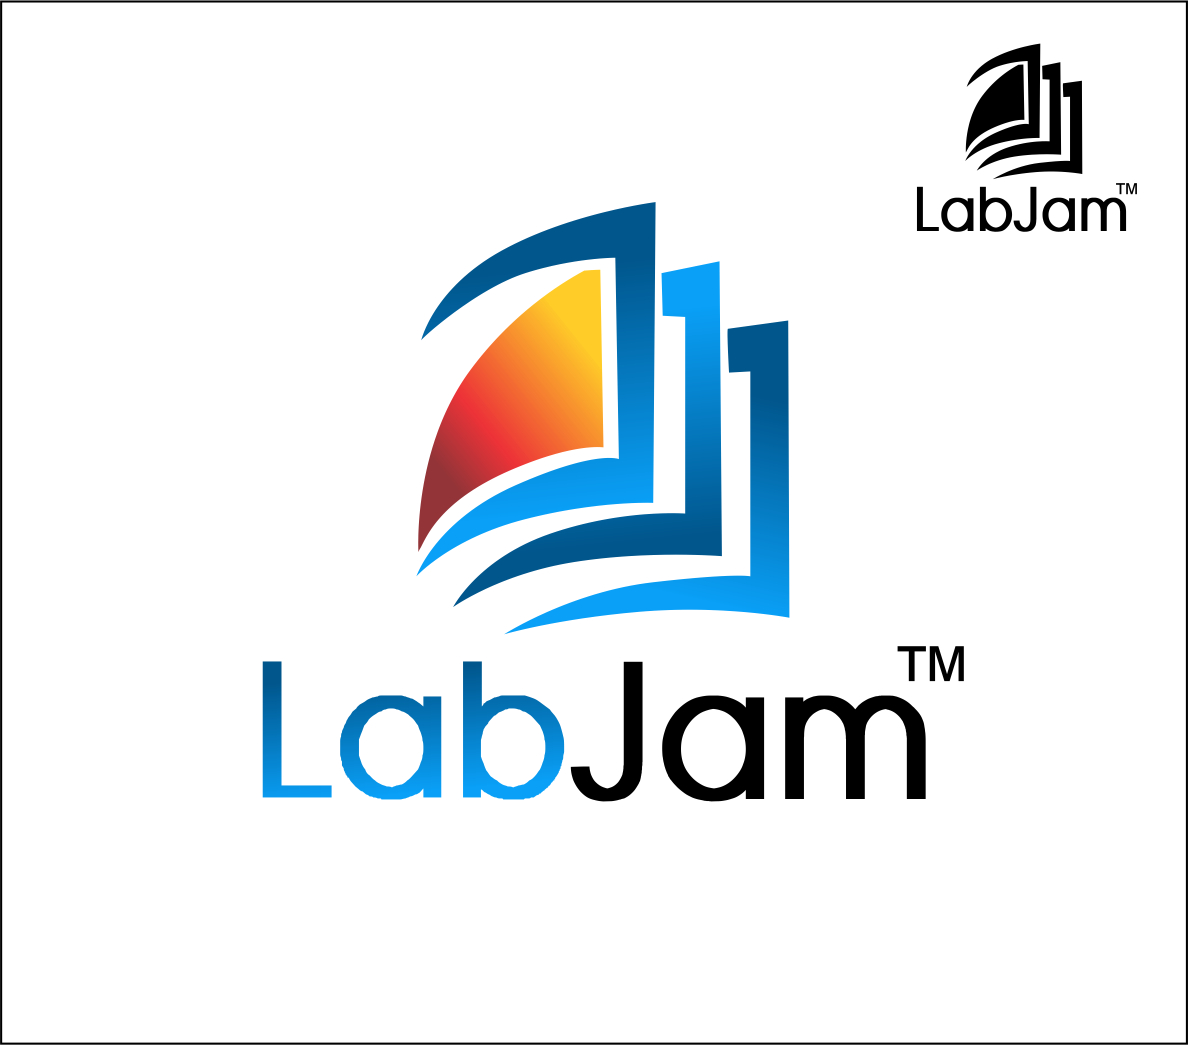 Logo Design by arkvisdesigns - Entry No. 59 in the Logo Design Contest Labjam.